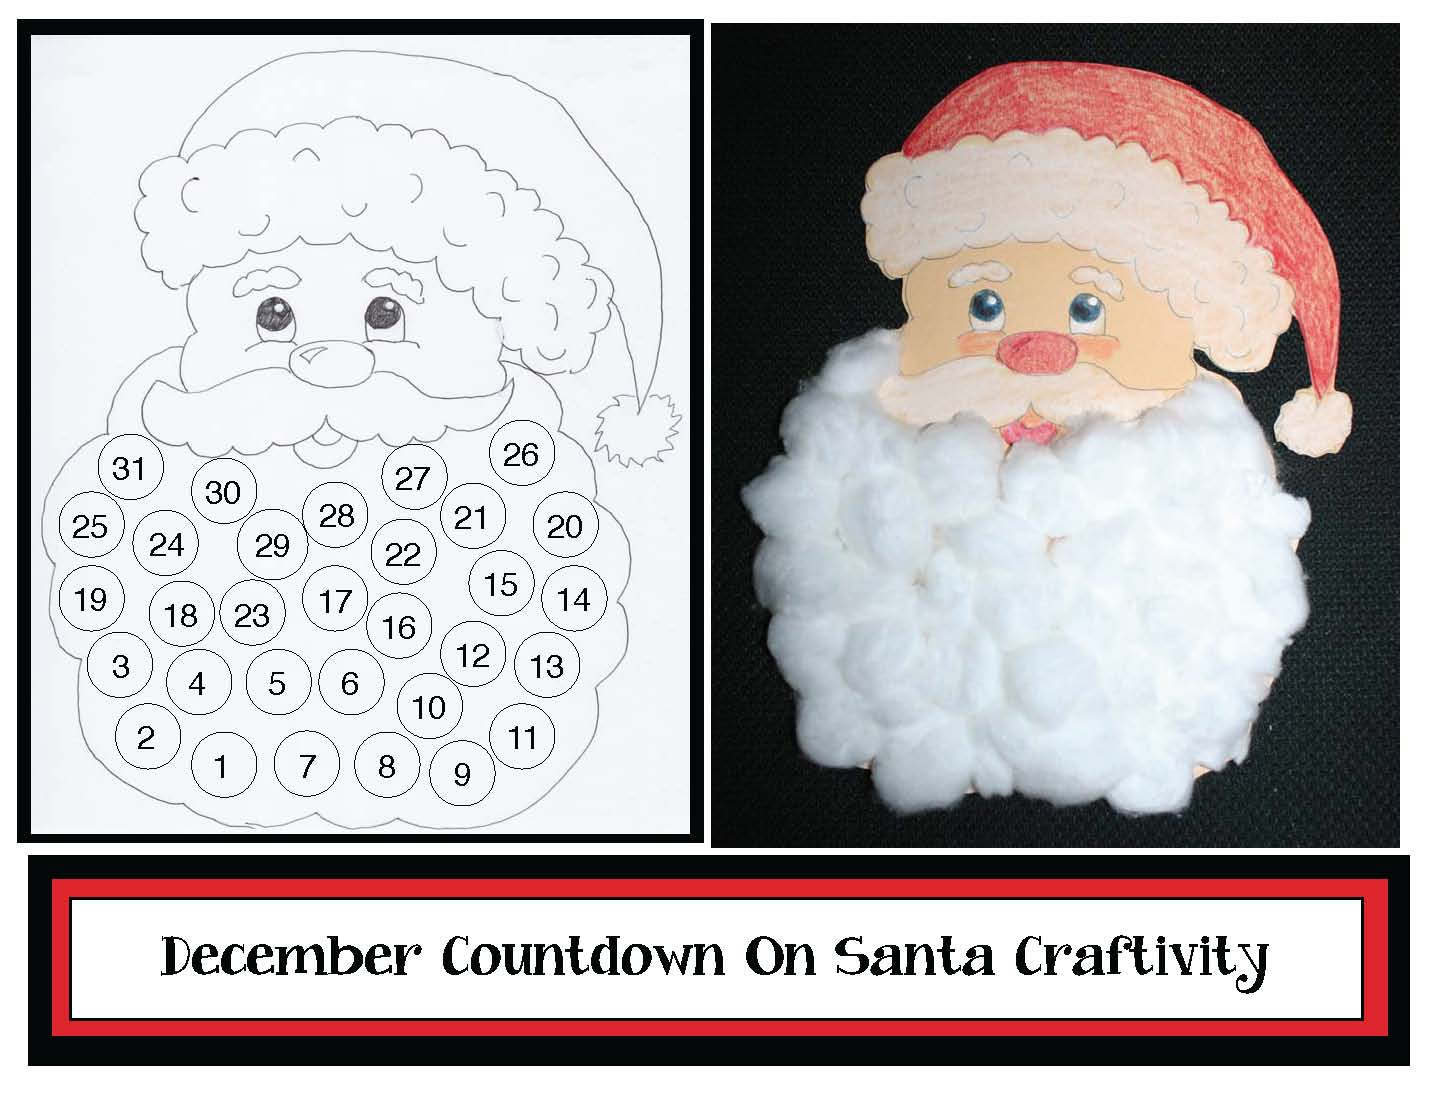 santa crafts, santa activities, counting down to christmas activities, countdown activities, reindeer crafts, wreath crafts, hand and foot reindeer craft, handprint reindeer antler crafts, handprint poems, fingerprint poems, finger print poems, hand print crafts, christmas crafts, christmas gifts for kids to make, kid made christmas gifts, kids crafts for christmas, shape activities, rudolph activities, shape slider, reindeer lunch bag puppet, finger print wreaths, secondary color mixing activities